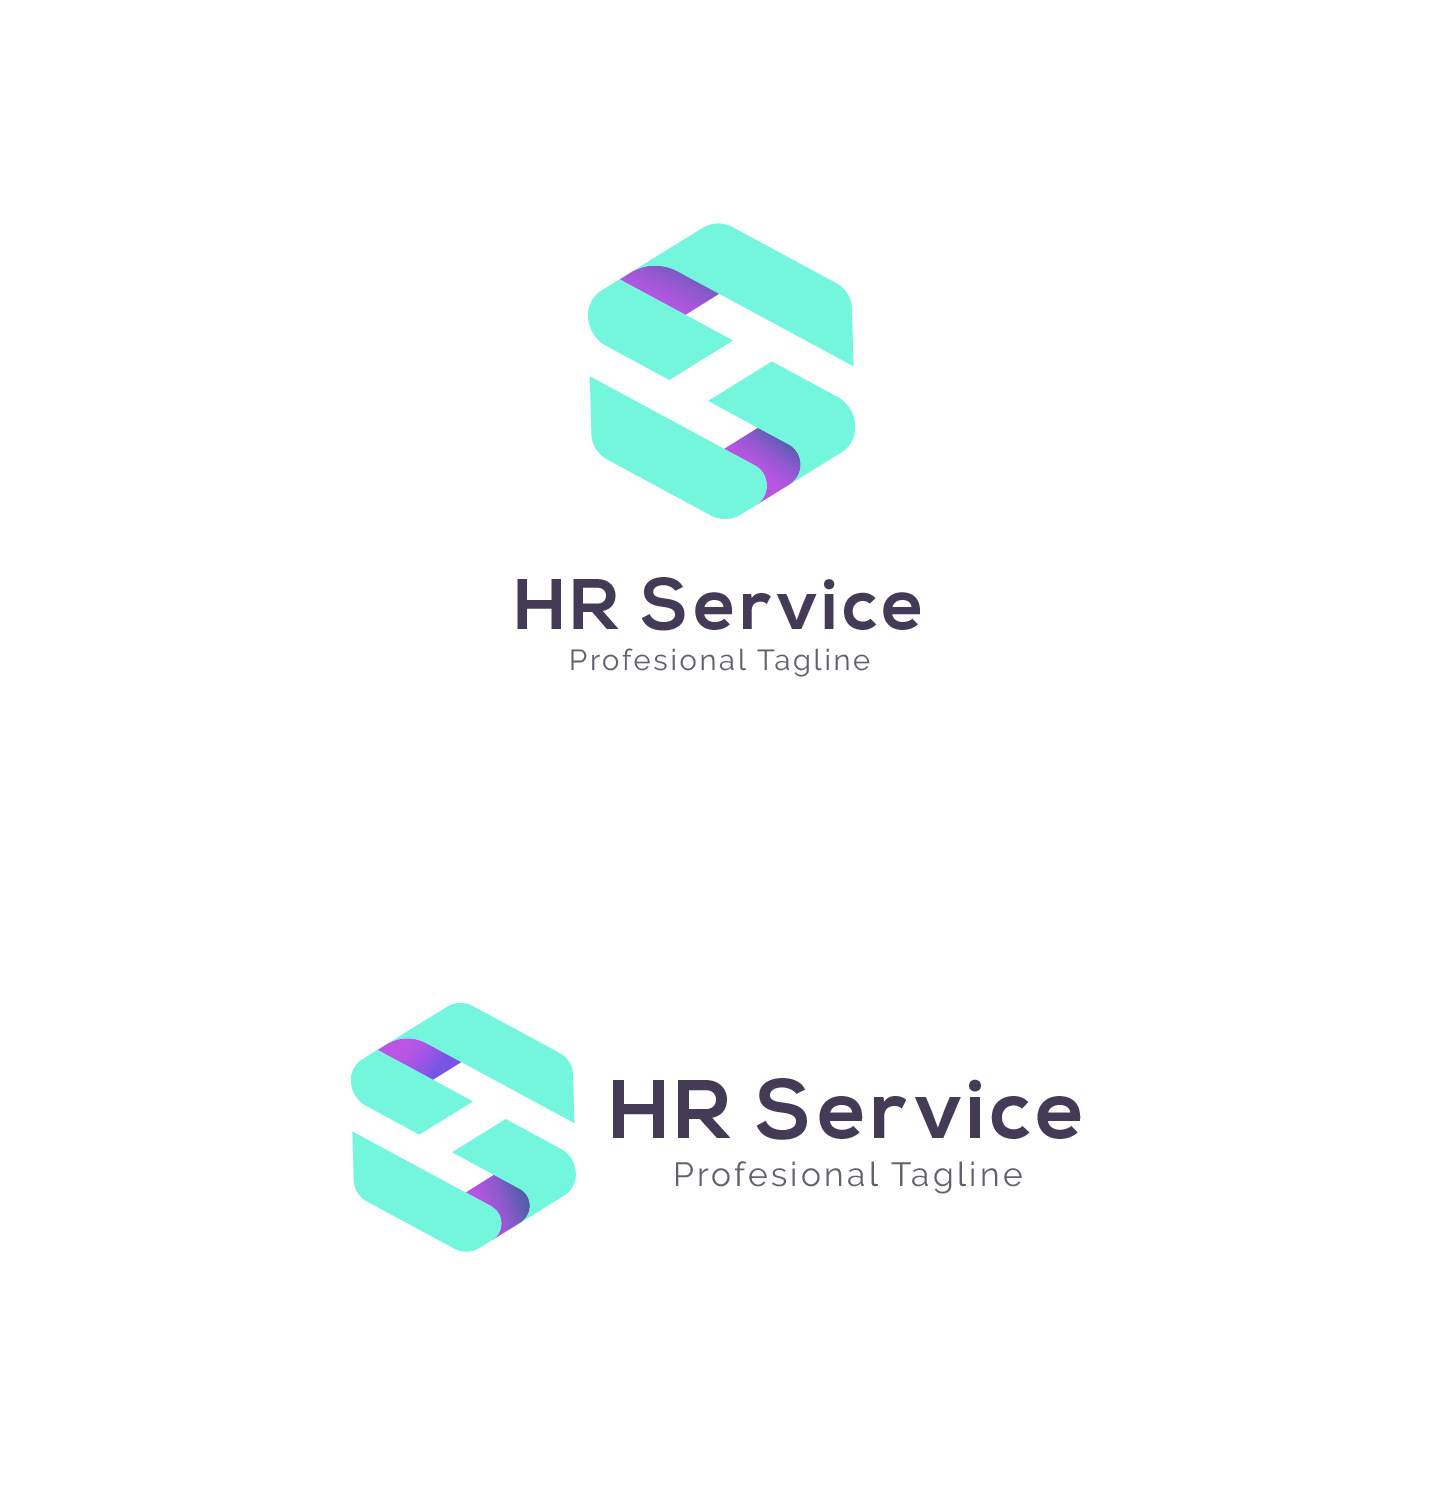 HR Service - H S Letter Logo example image 2